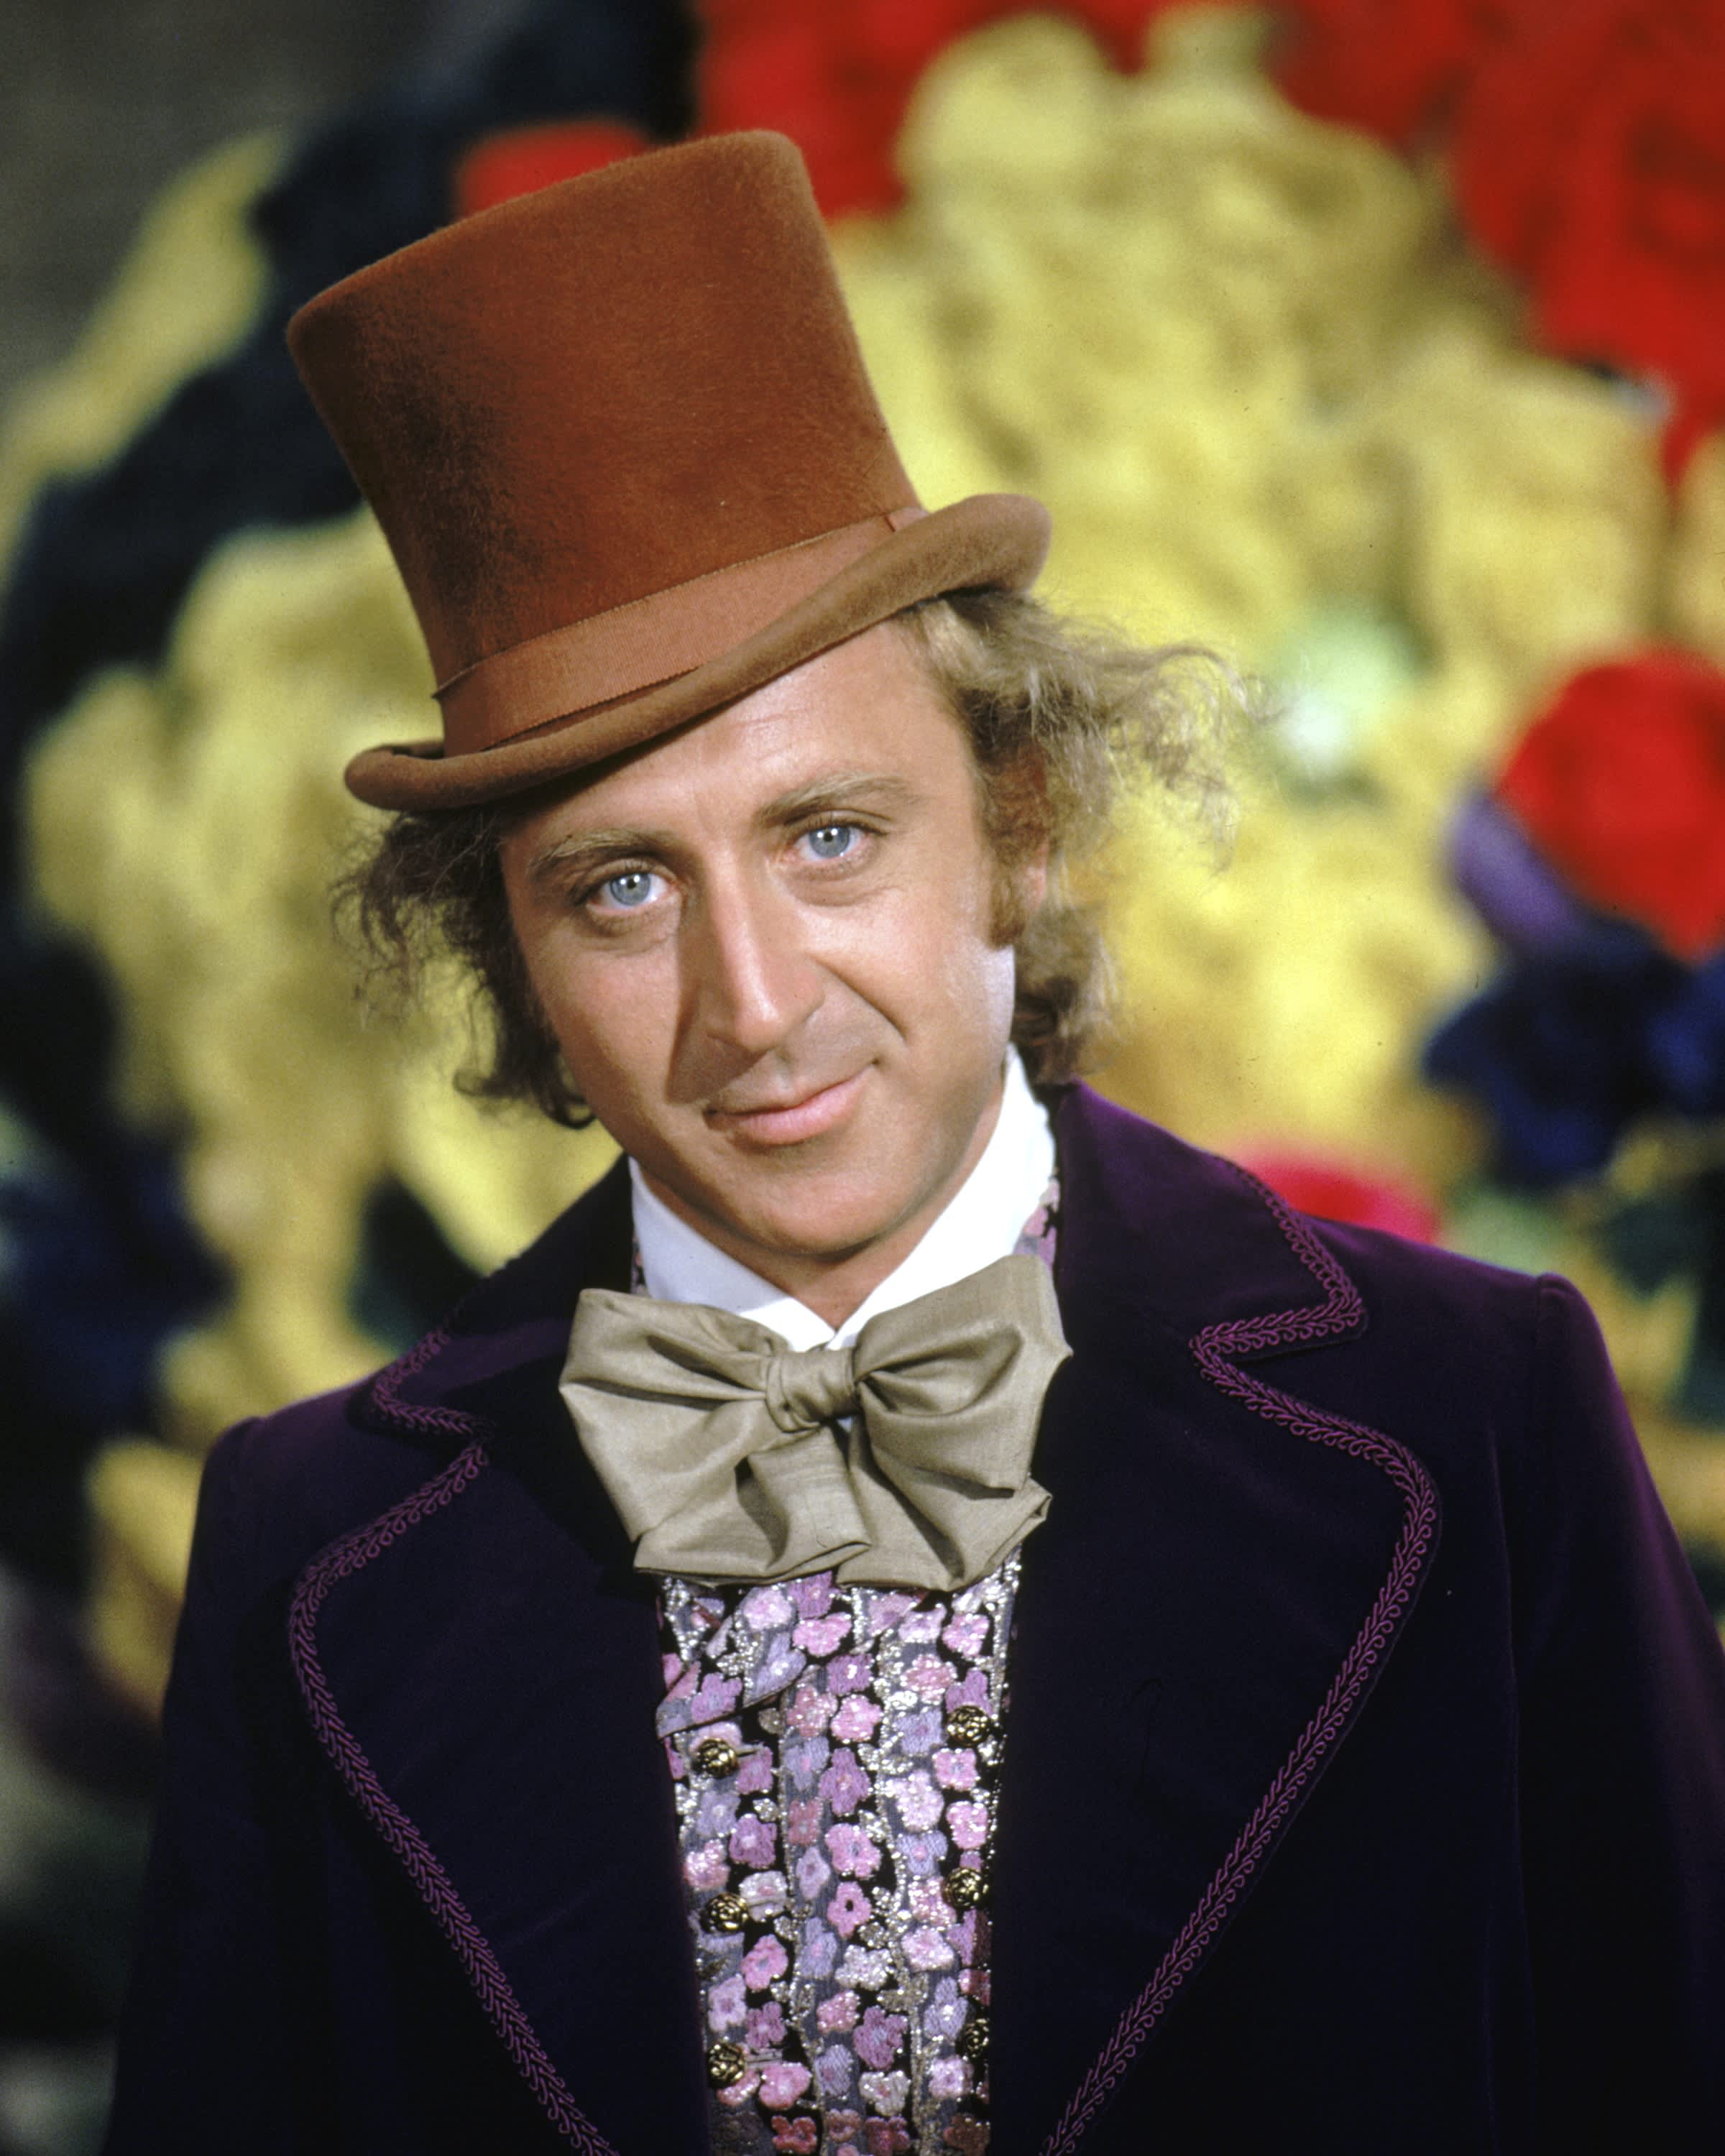 Hollywood, family bid Gene Wilder adieu